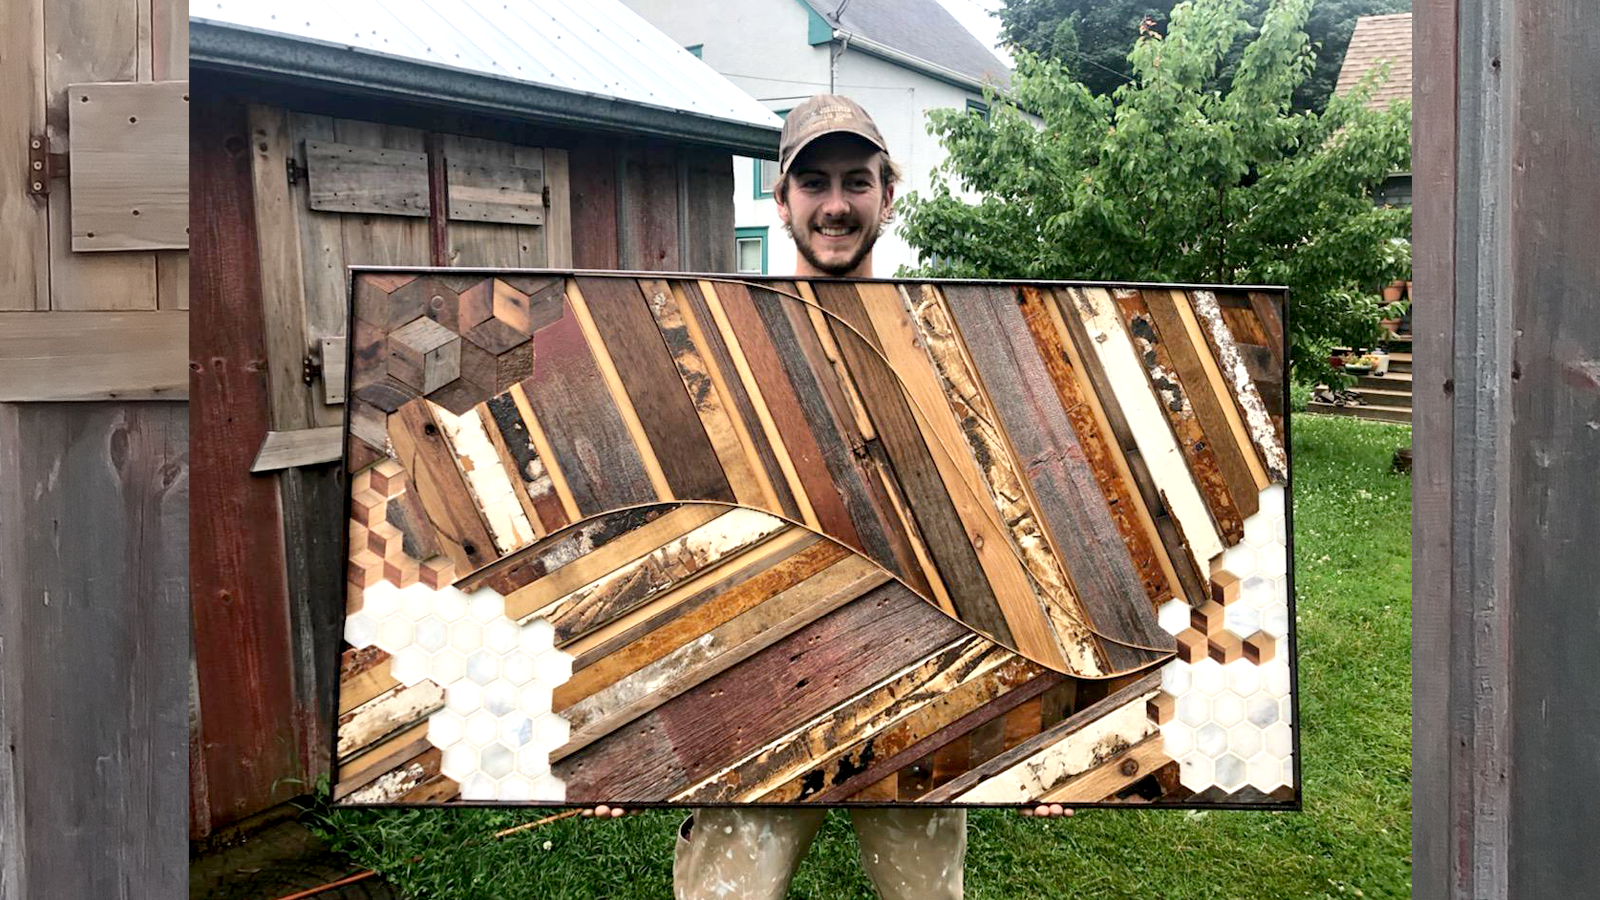 Joey Ford holding an art piece he made